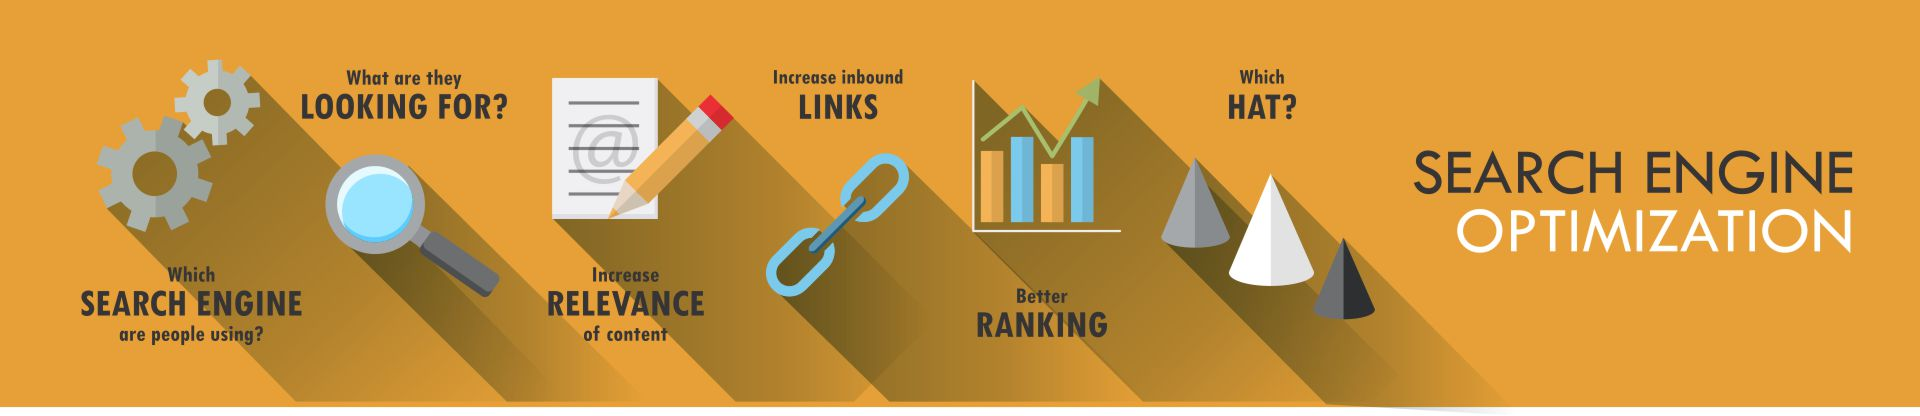 Edmonton SEO services combine with web design user experience and content. Links for edmonton seo optimized google search engine rankings